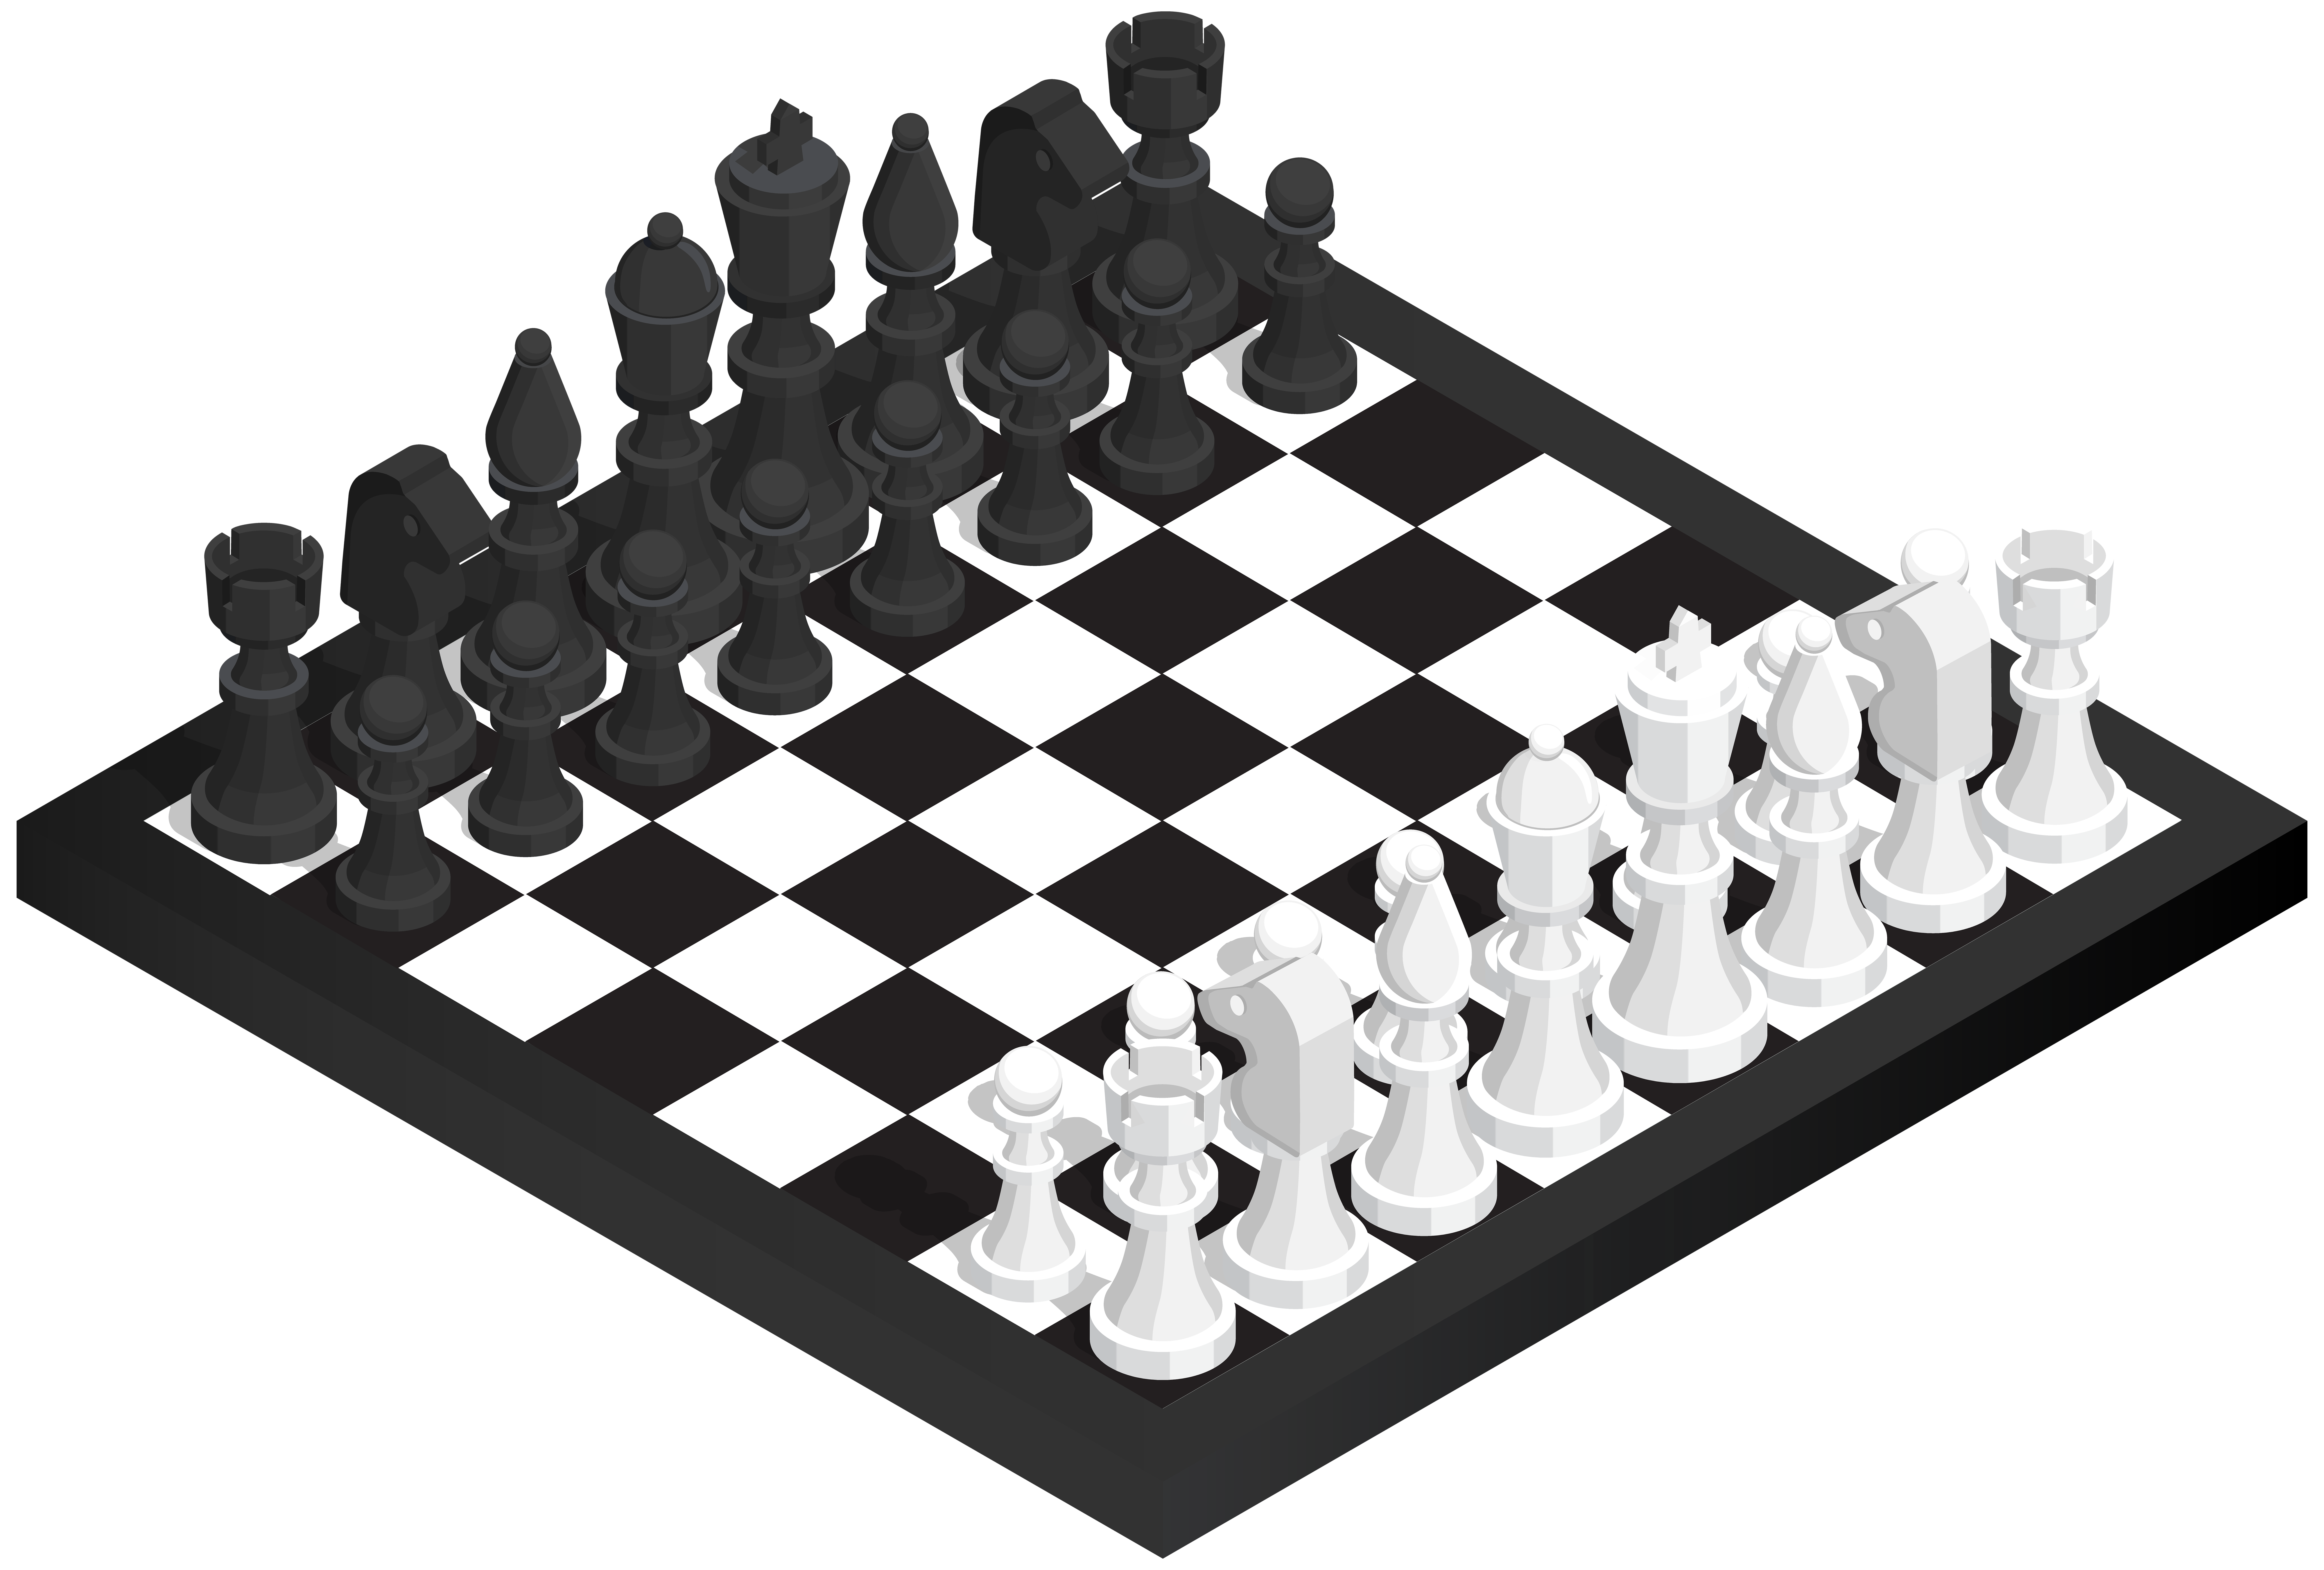 clip royalty free library Chess clipart. Chessboard png clip art.